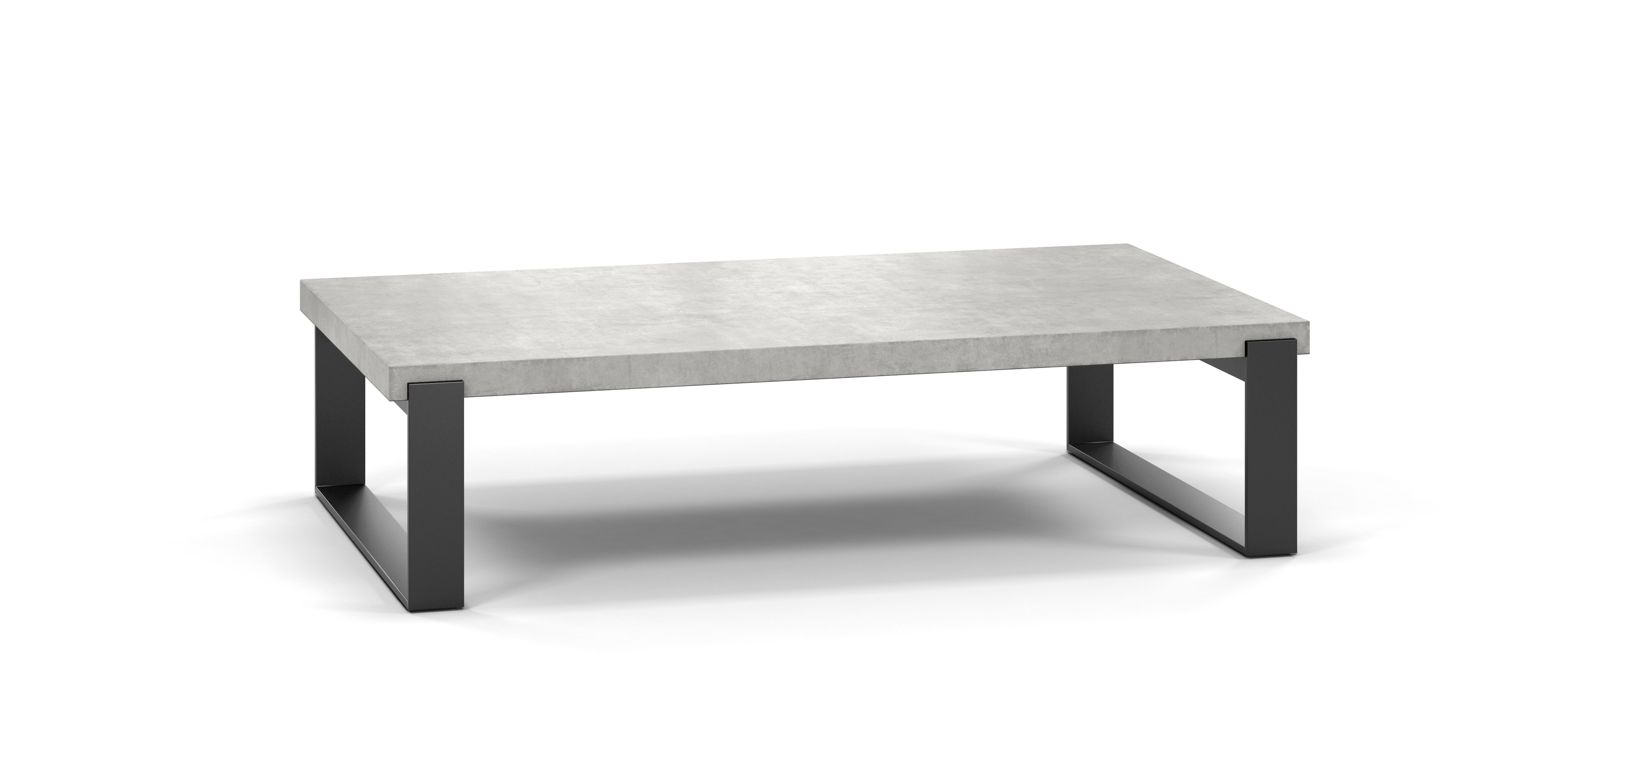 Optimum b ton cocktail table roche bobois Roche bobois coffee table